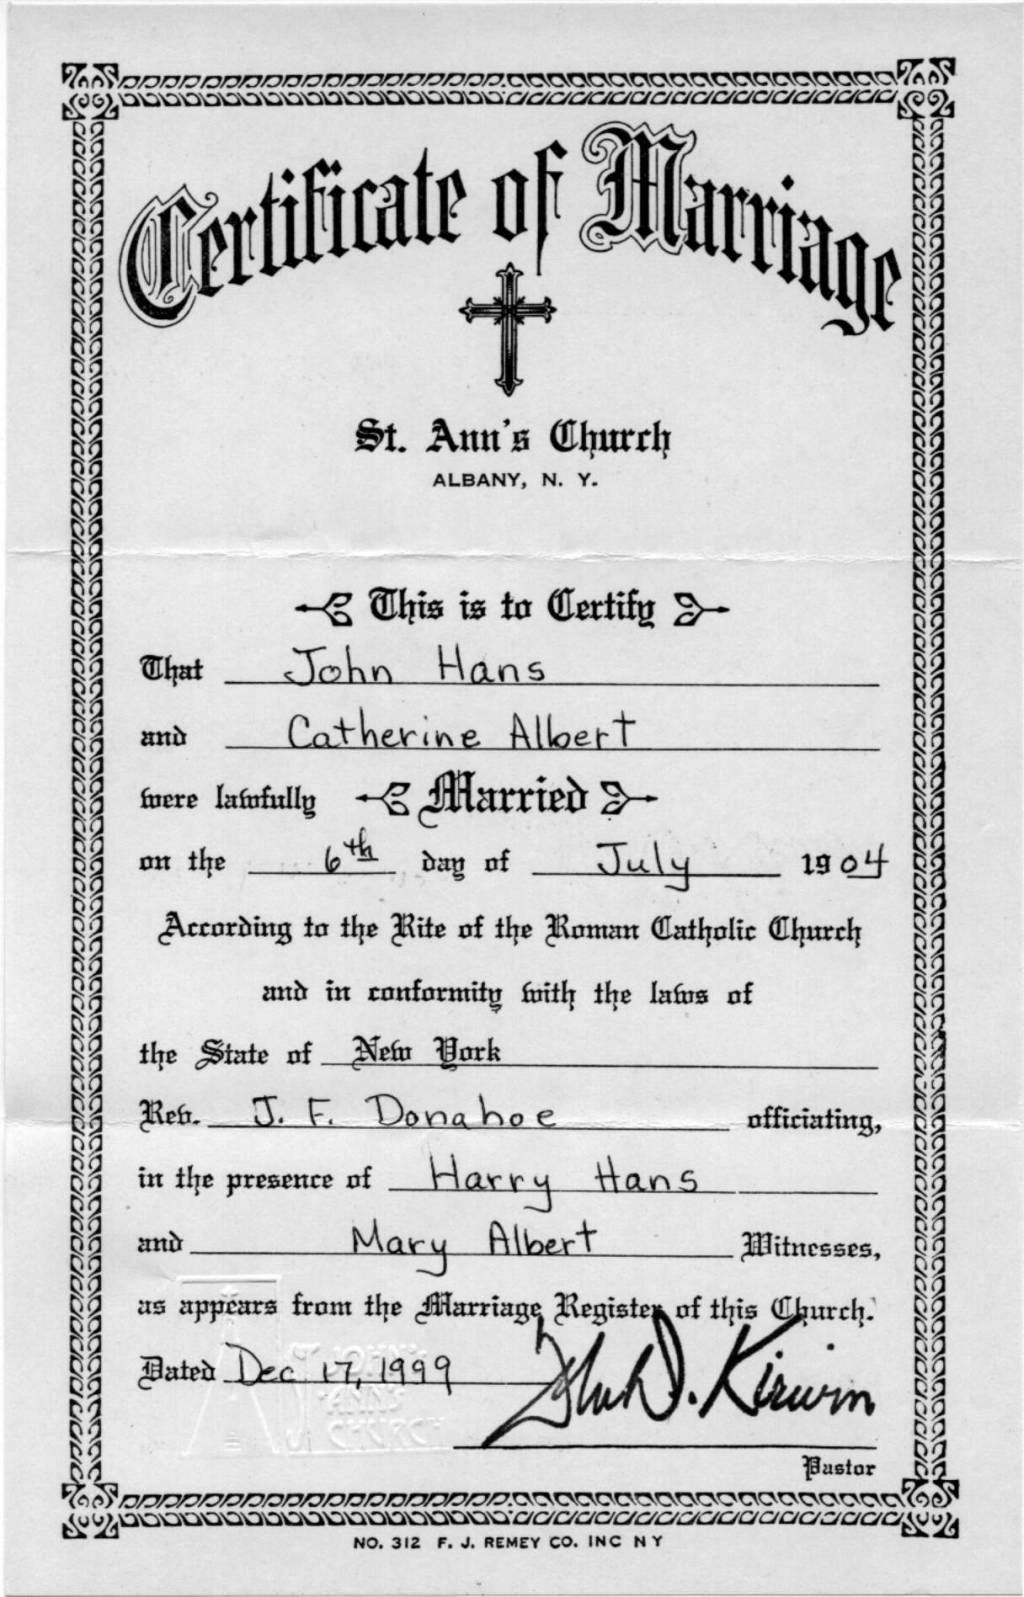 Jennings genealogy john hans and catherine alberts marriage john hans and catherine alberts marriage certificate from st anns church in albany ny 1betcityfo Gallery